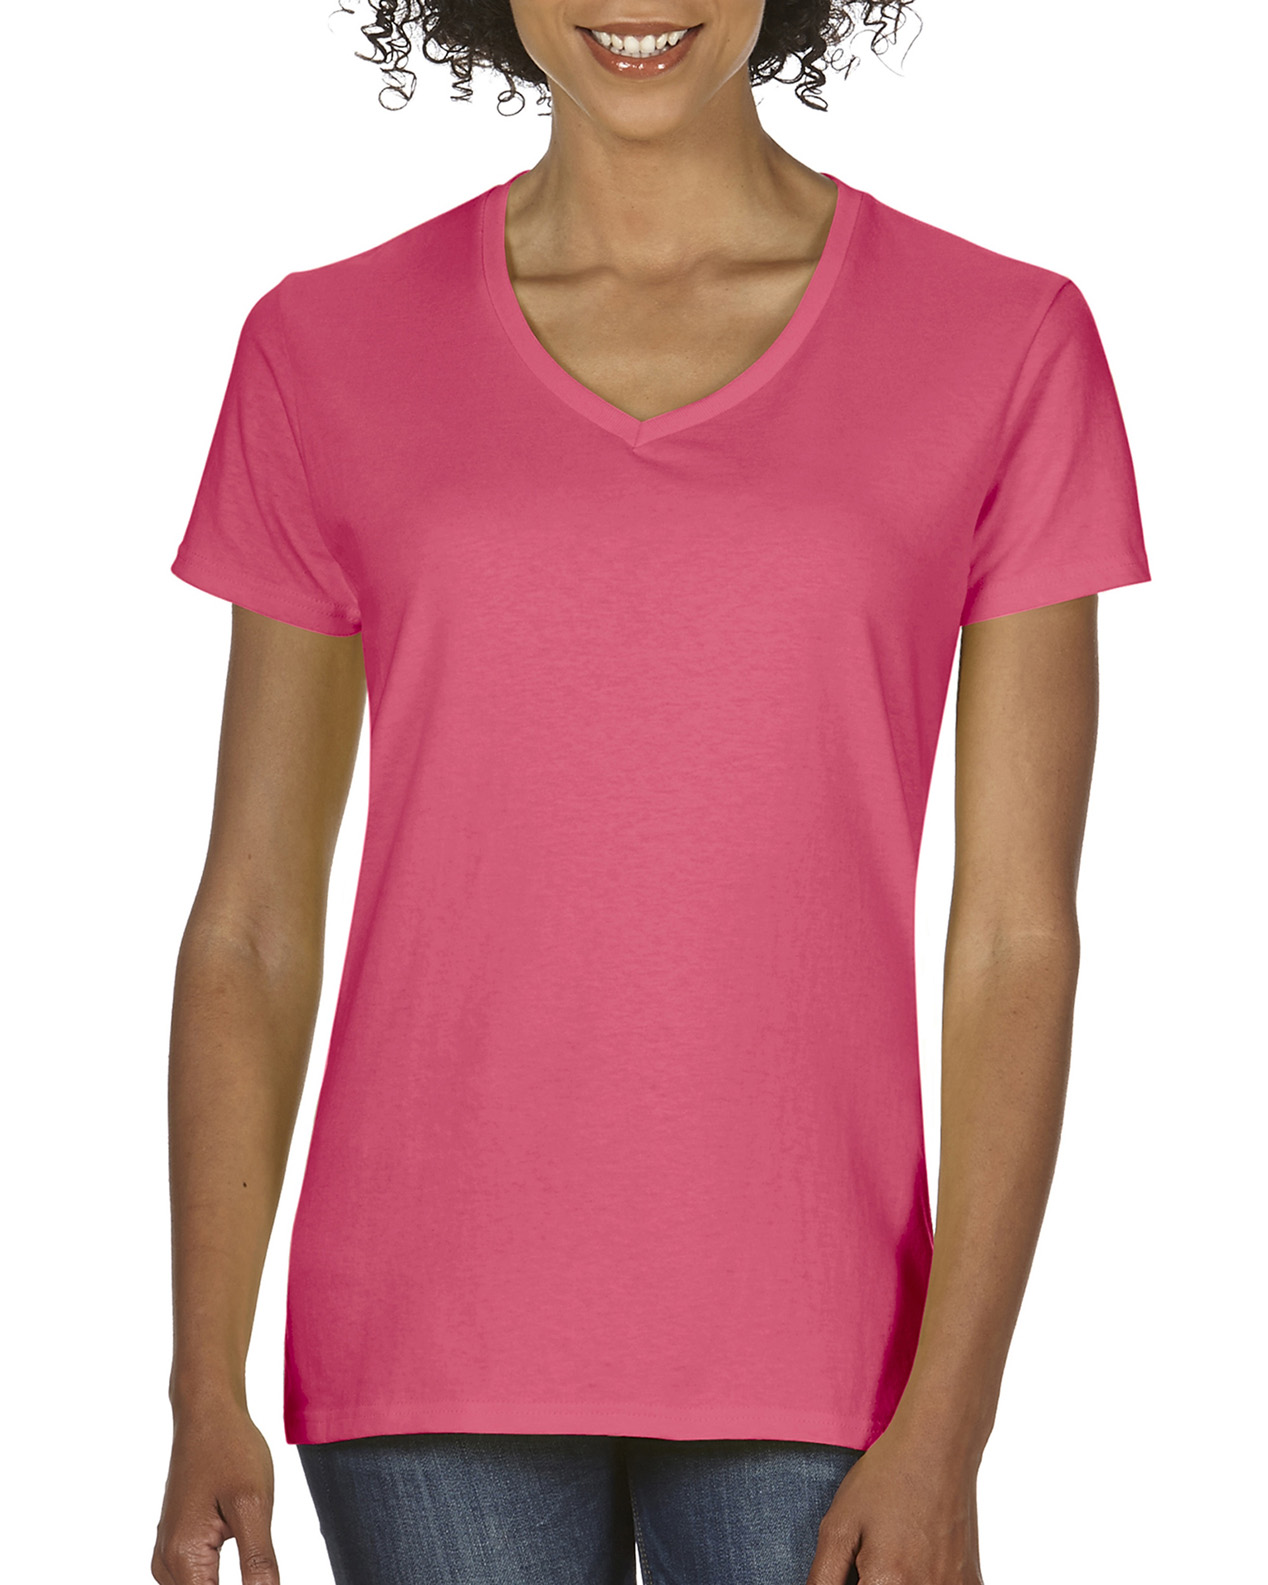 7062b478f4 5V00L | Gildan® Heavy Cotton™ | 5.3 oz/yd² | Ladies' V-Neck T-Shirt ...